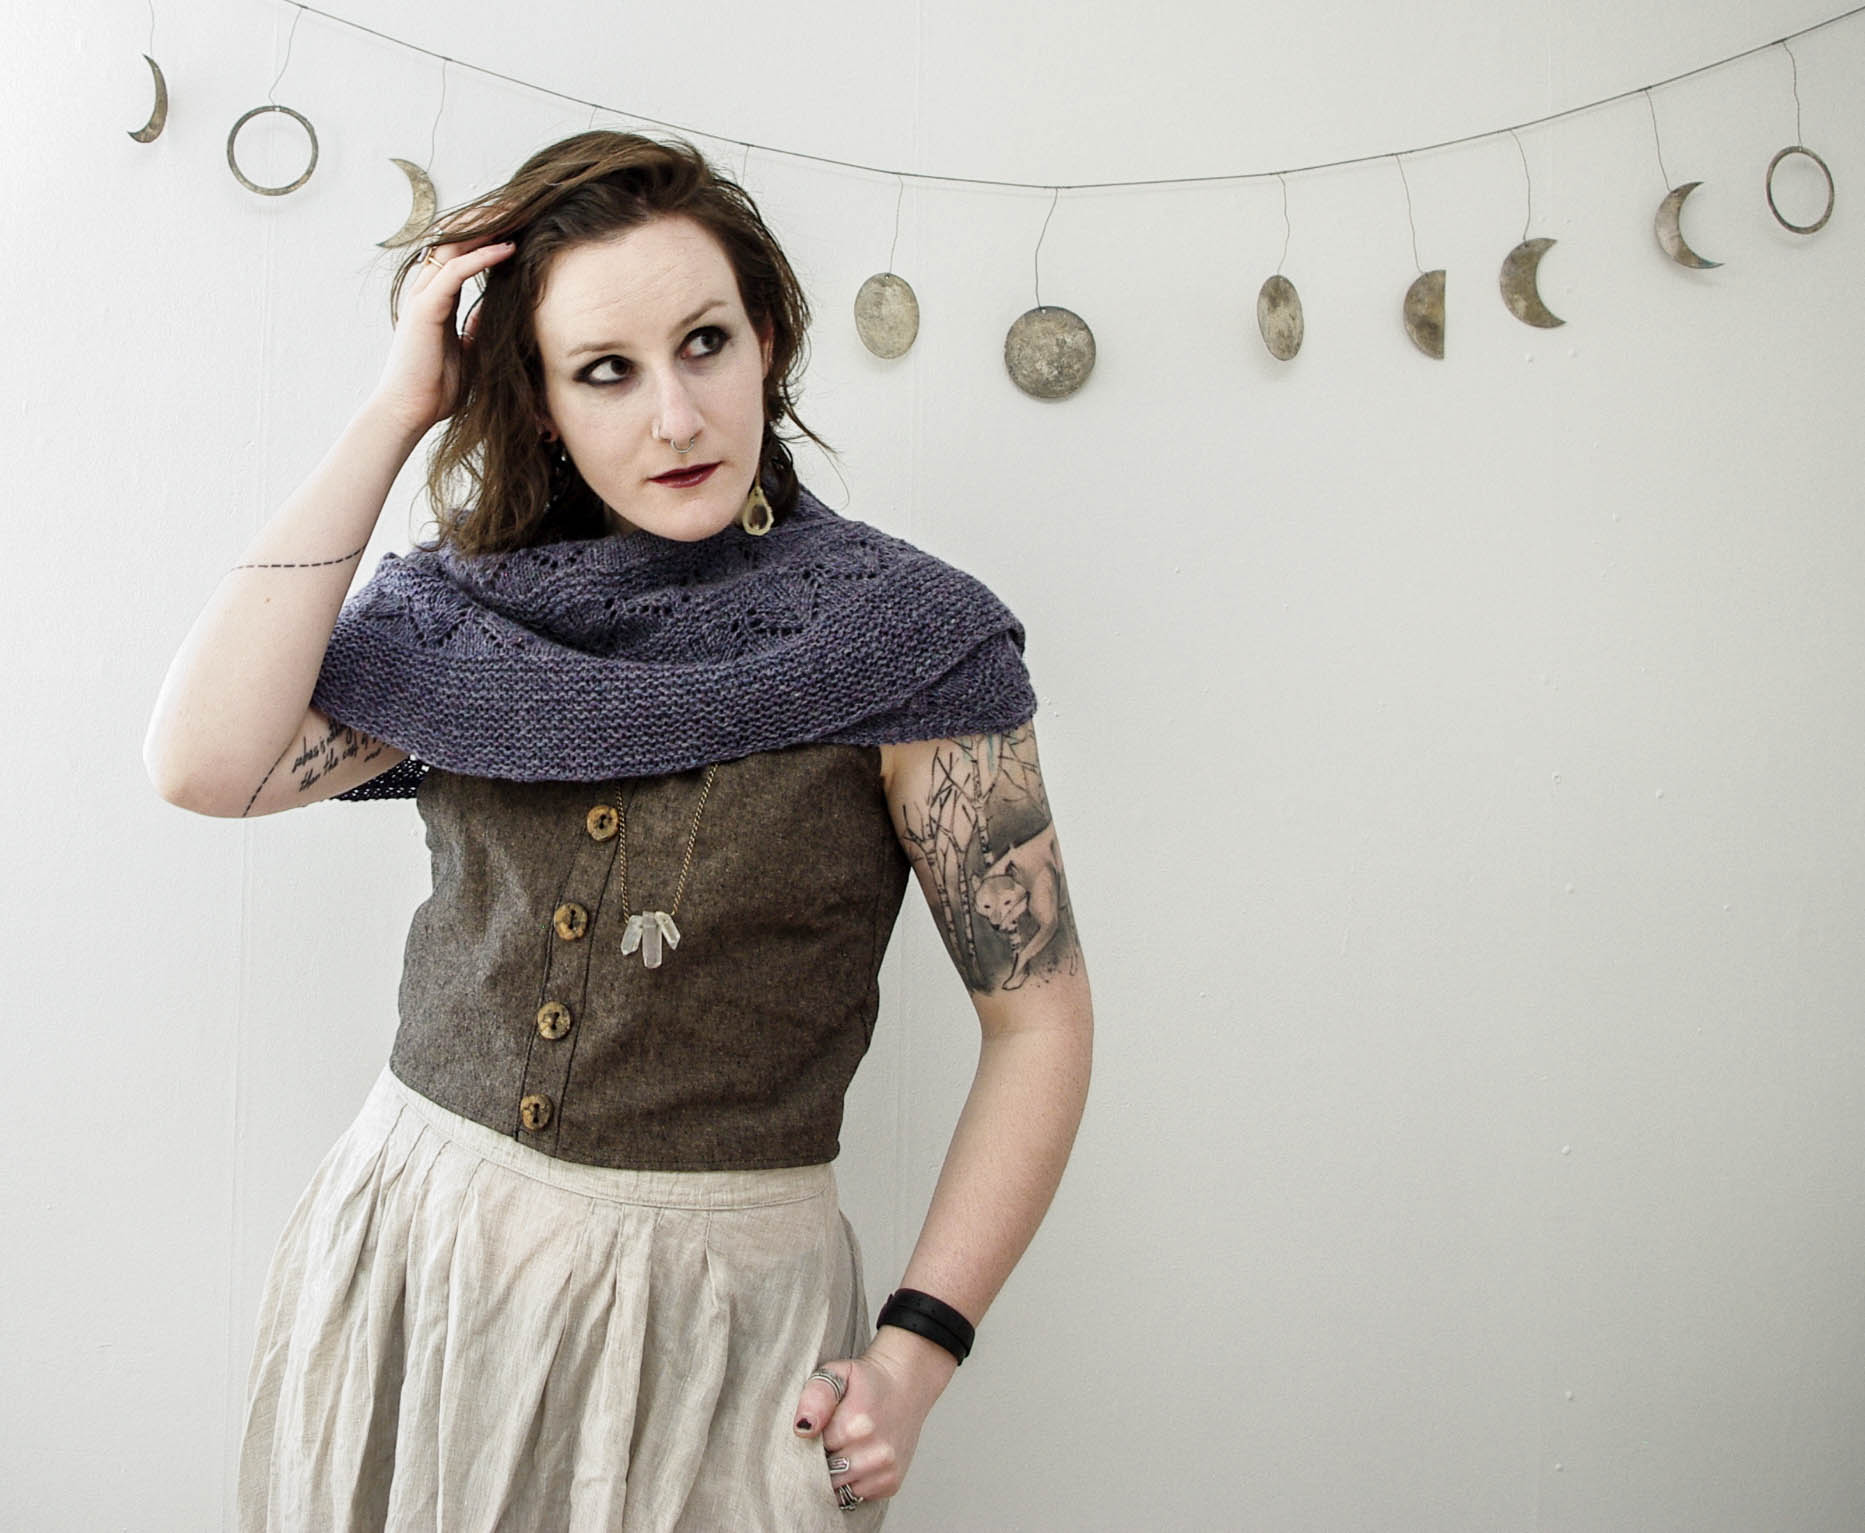 sneak peek from a photo shoot for a new design created especially for  circle of stitches .  harrisville designs flywheel yarn ,  zinnia skirt , and hacked  hinterland dress -turned-crop top with a gorgeous linen and spalted maple buttons.